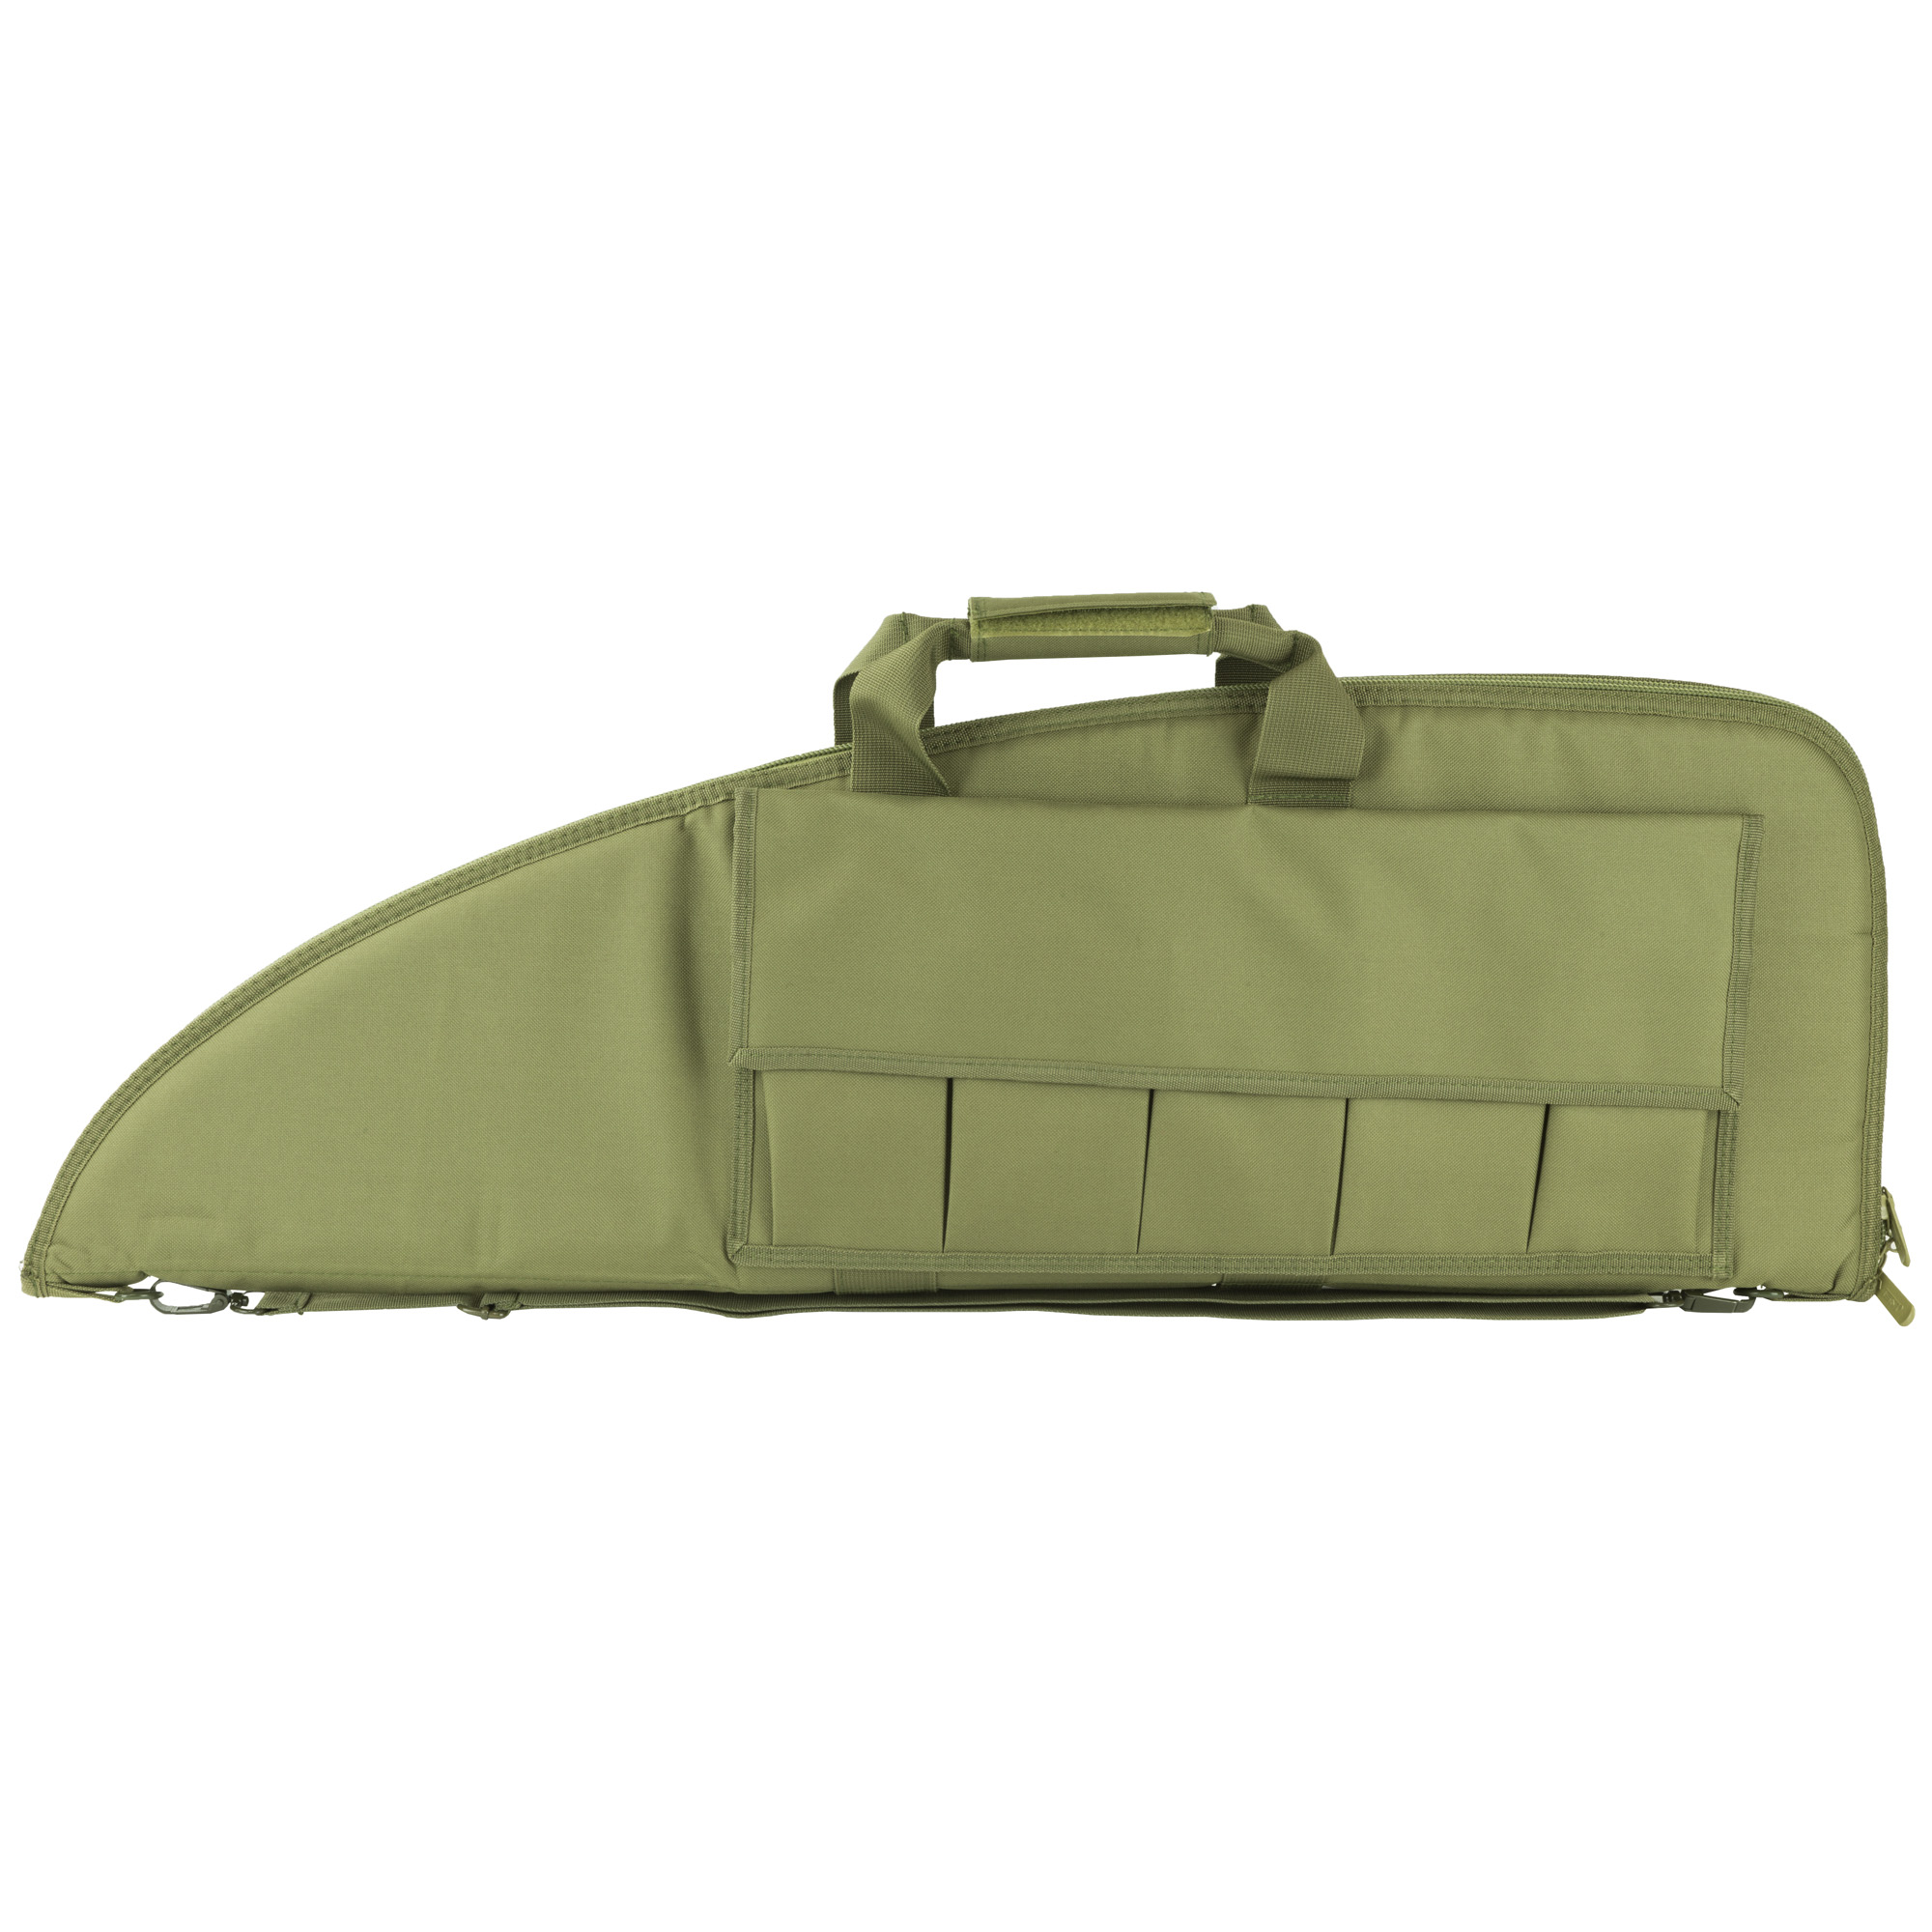 The VISM Gun Case has high density foam inner padding for superior protection and heavy duty metal double zippers.